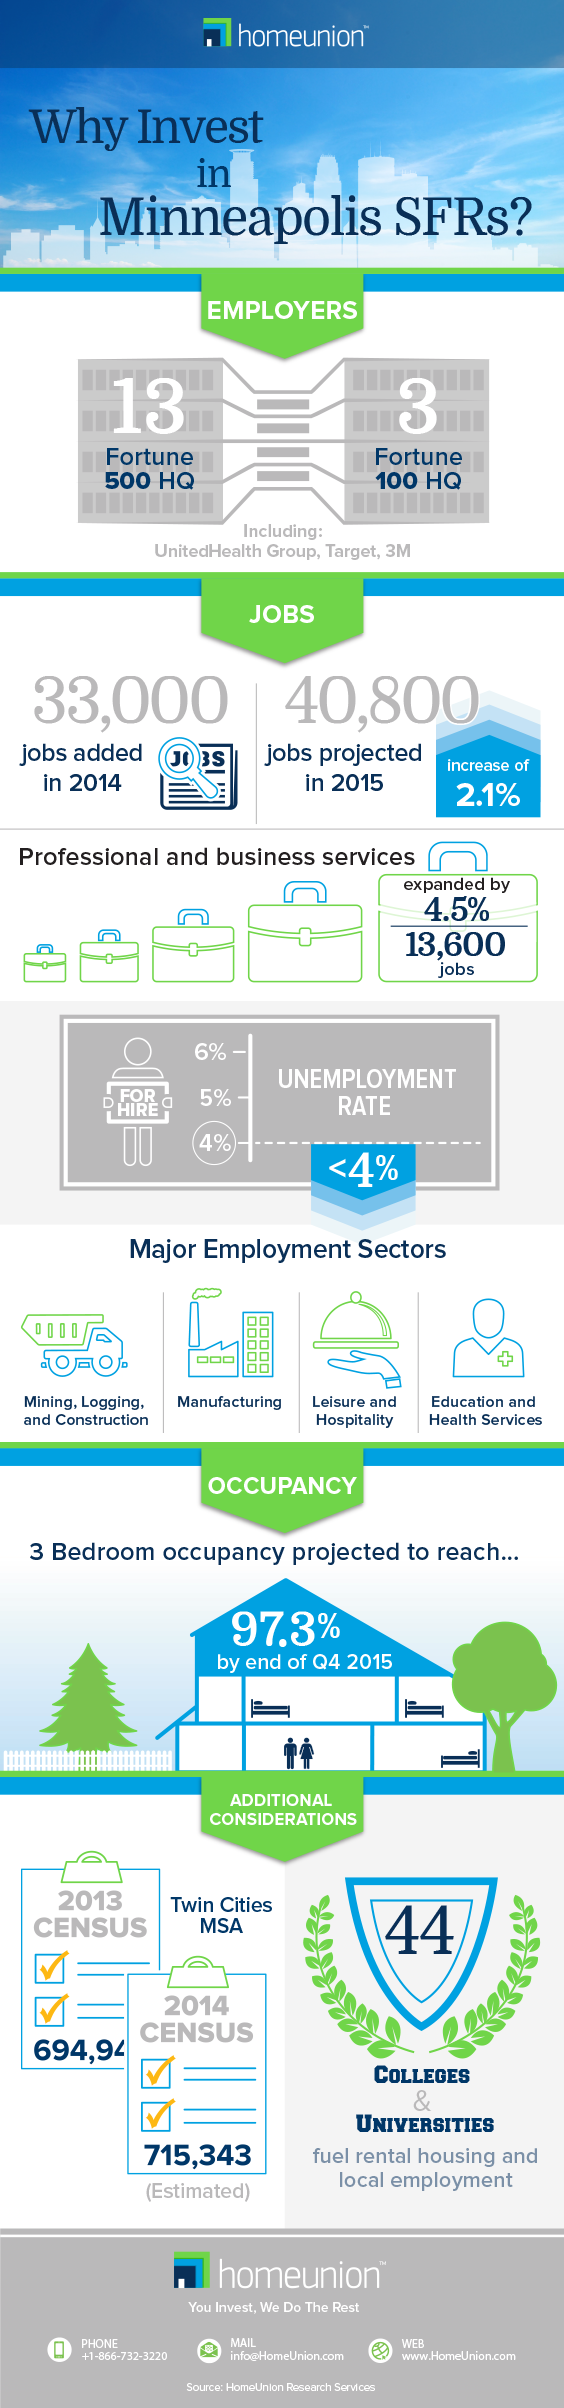 Minneapolis Q3 2015 Infographic